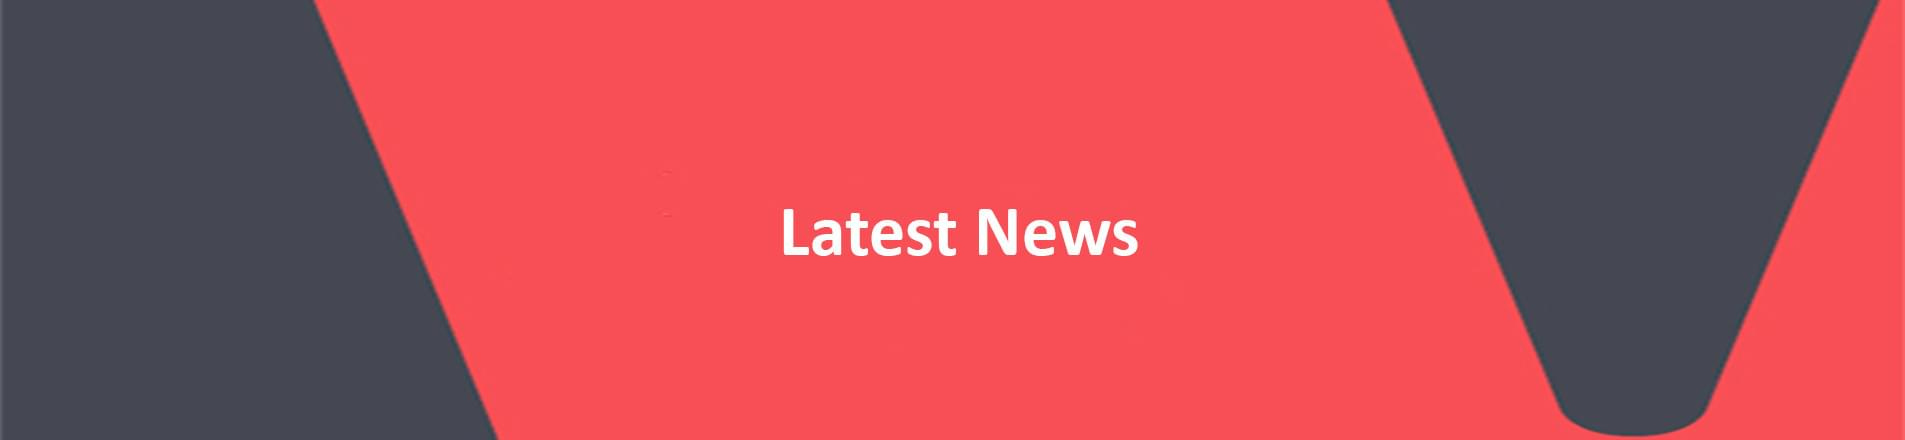 The words Latest News in white on a red VERCIDA branded background